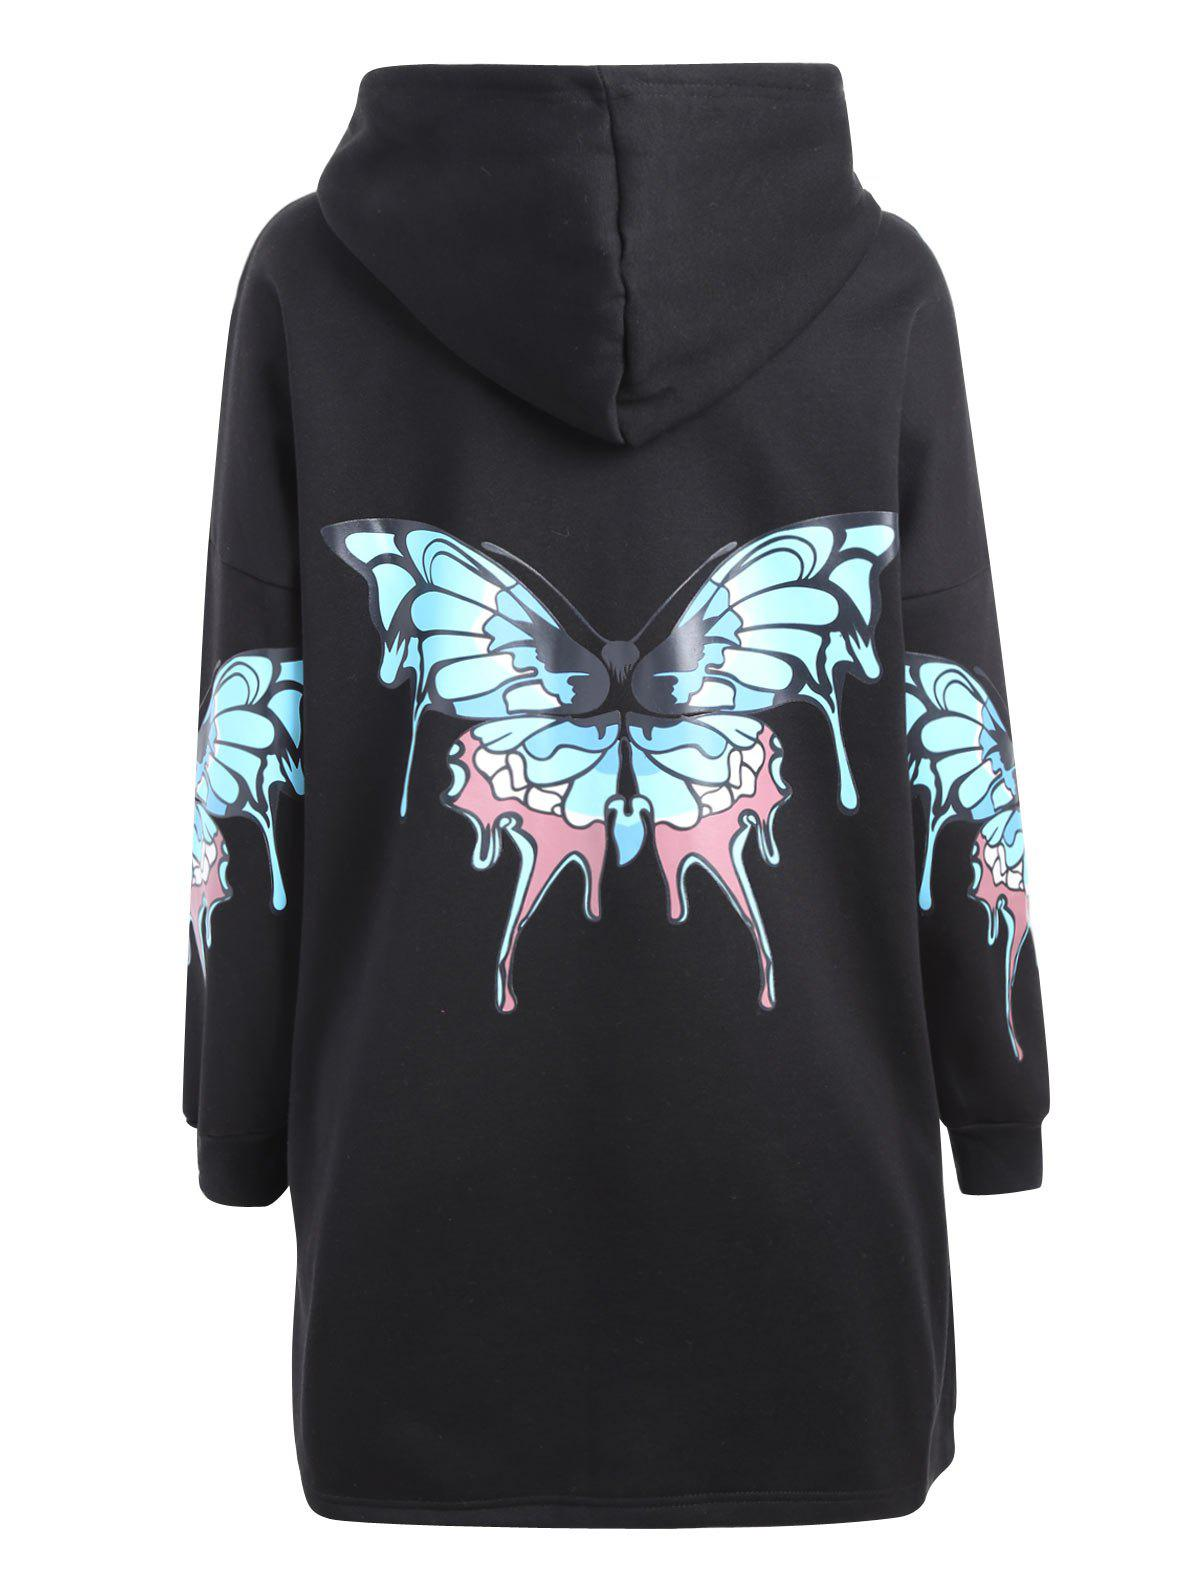 Plus Size Butterfly Printed Zip Up Hooded CoatWOMEN<br><br>Size: 3XL; Color: BLACK; Clothes Type: Others; Material: Cotton Blends,Polyester; Type: Slim; Shirt Length: Long; Sleeve Length: Full; Collar: Hooded; Closure Type: Zipper; Pattern Type: Insect; Embellishment: Front Pocket; Style: Casual; Season: Fall,Winter; Weight: 0.6900kg; Package Contents: 1 x Coat;